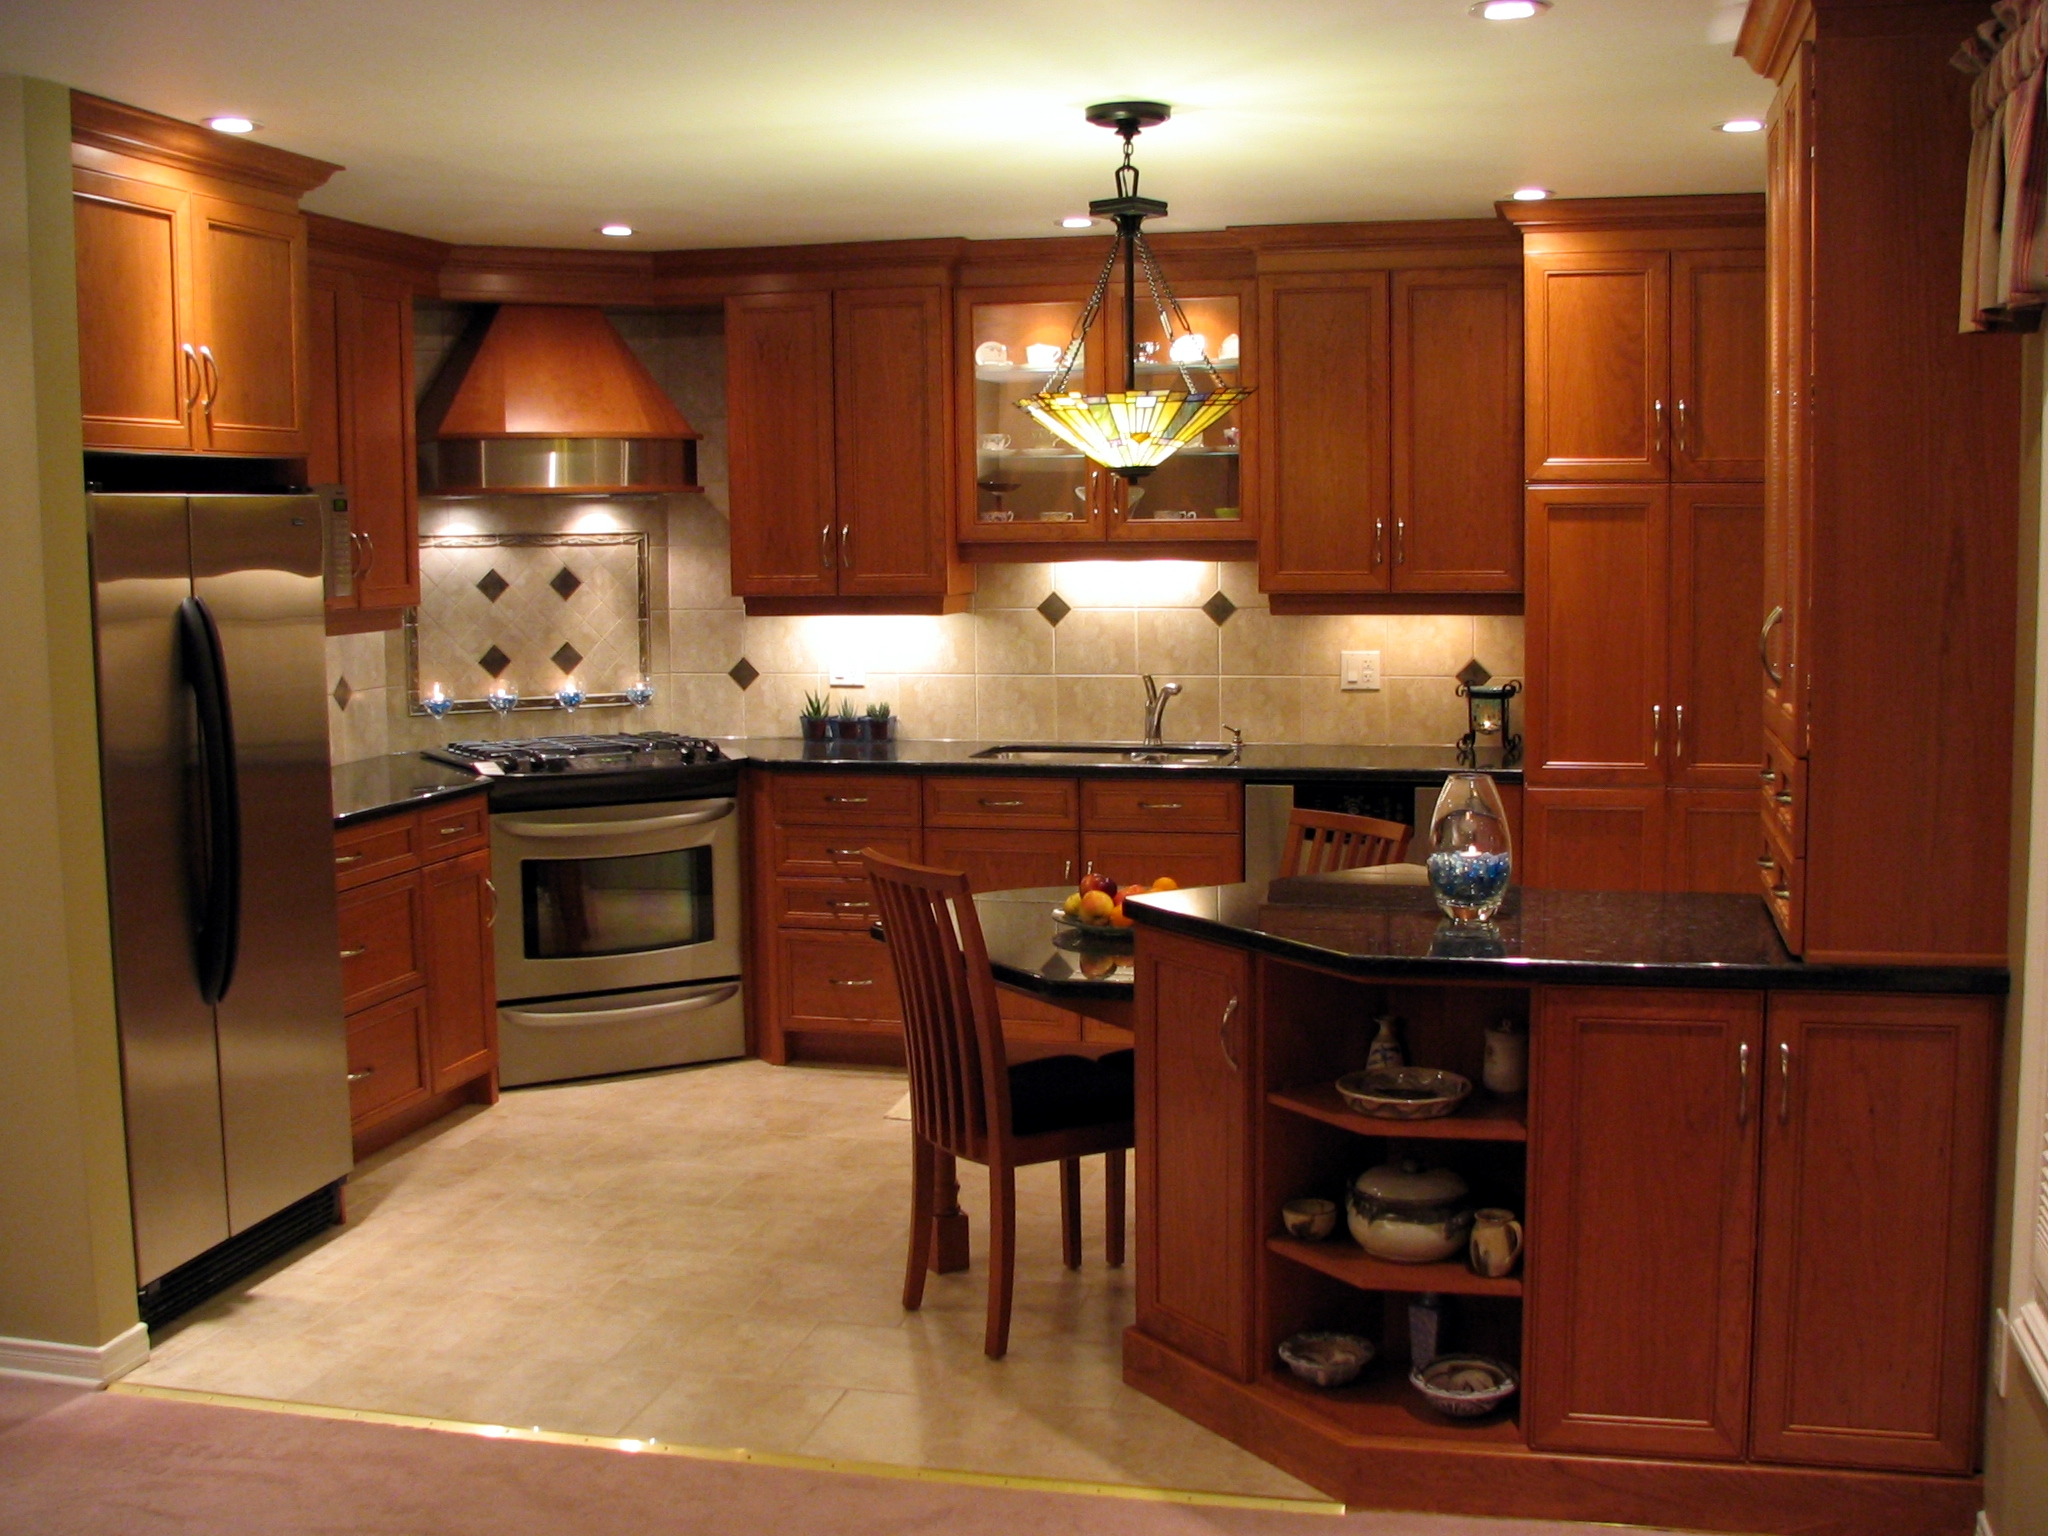 Midnight Blue Kitchen Cabinets As Dark Wood Kitchen Cabinets And The